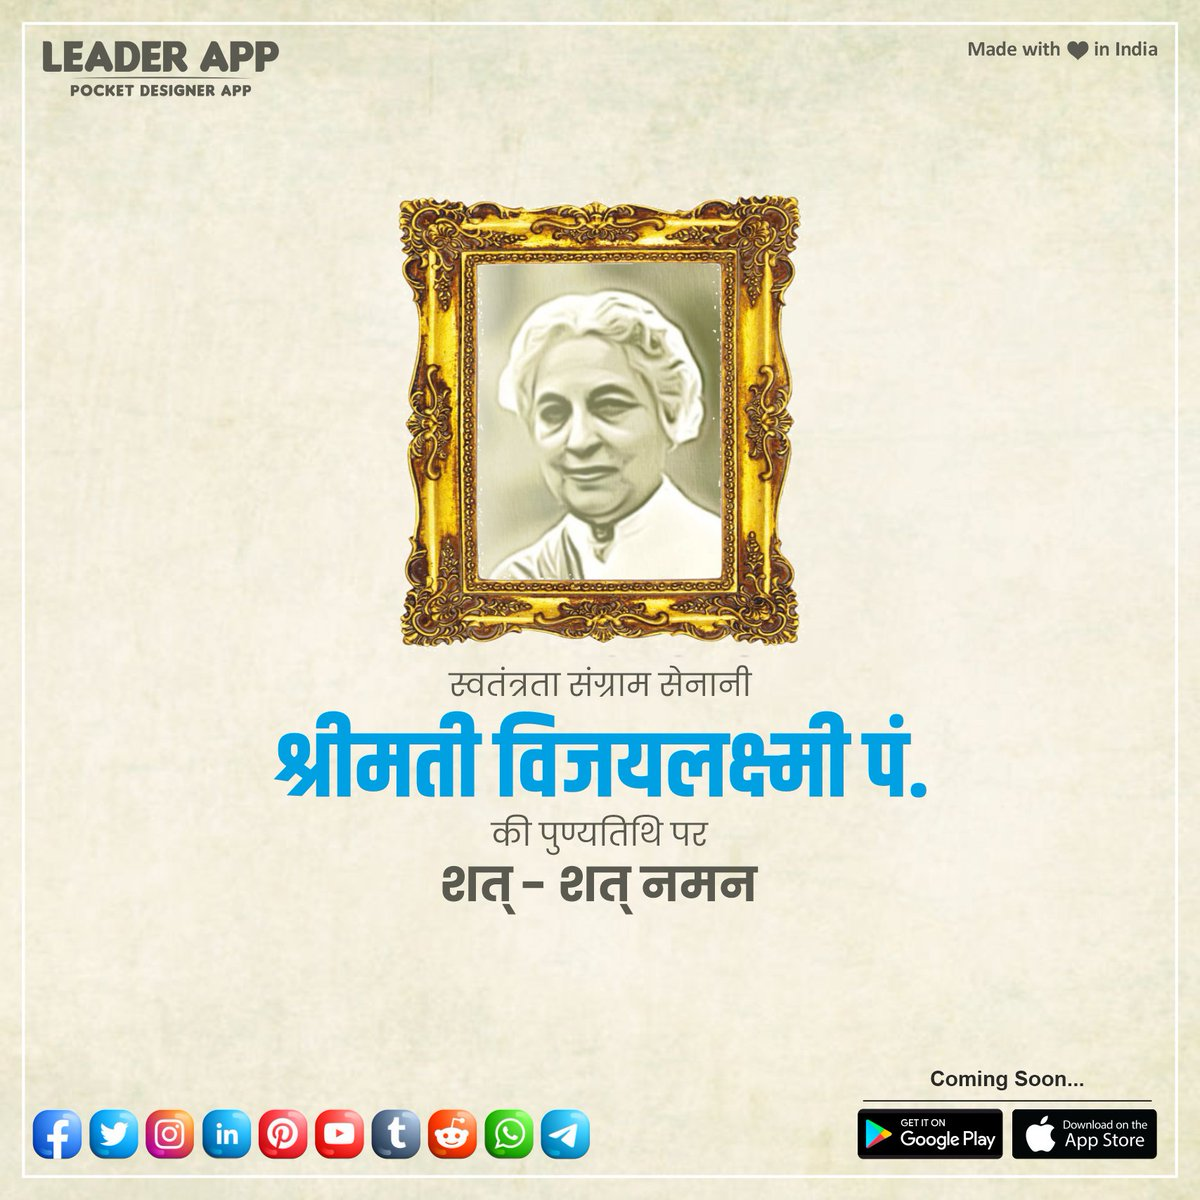 #VijayaLakshmiPandit #UnitedNationsGeneralAssembly  #FirstFemale #1stFemale #UN #UNDay #Indiandiplomat #politician #पुण्यतिथि #श्रद्धाजंलि #DeathAnniversary #leaderapp #leaderappindia #indianapp #AppStore #playstore #vocalforlocal #vocalforlocalindia #socialmedia #madewithlove